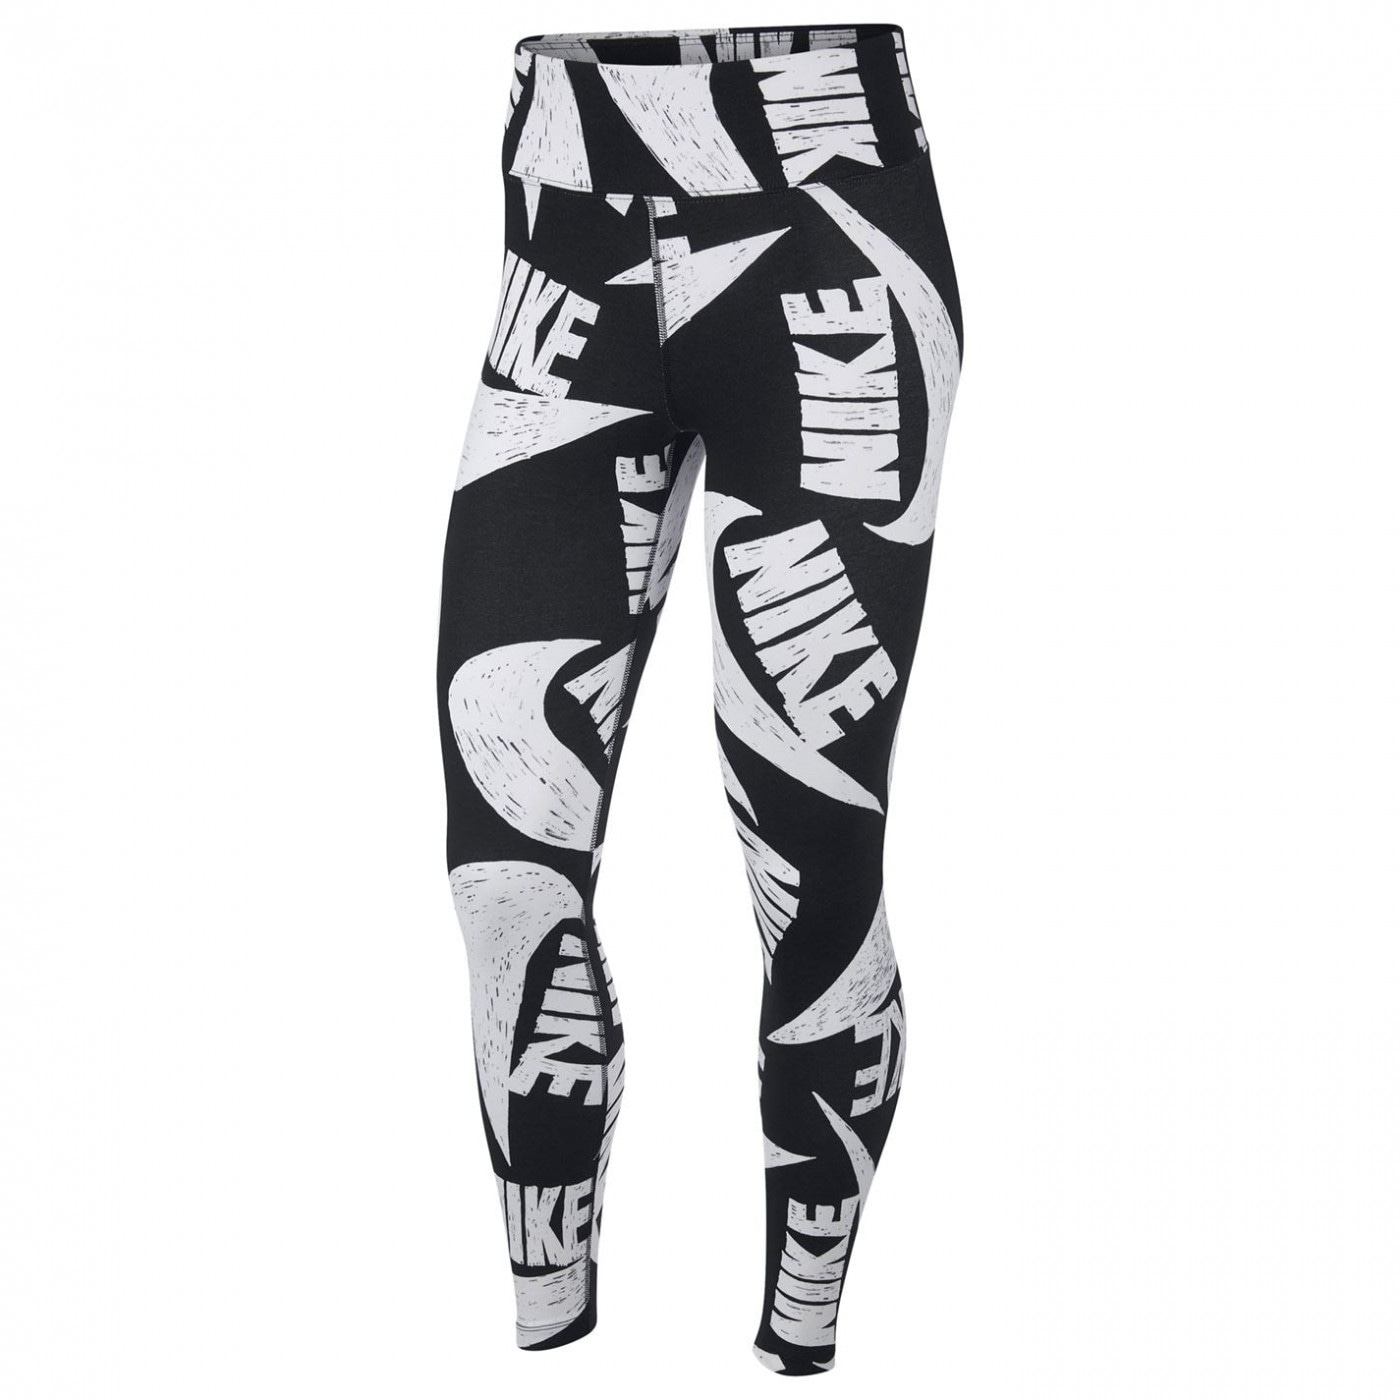 Women's leggings Nike Sportswear